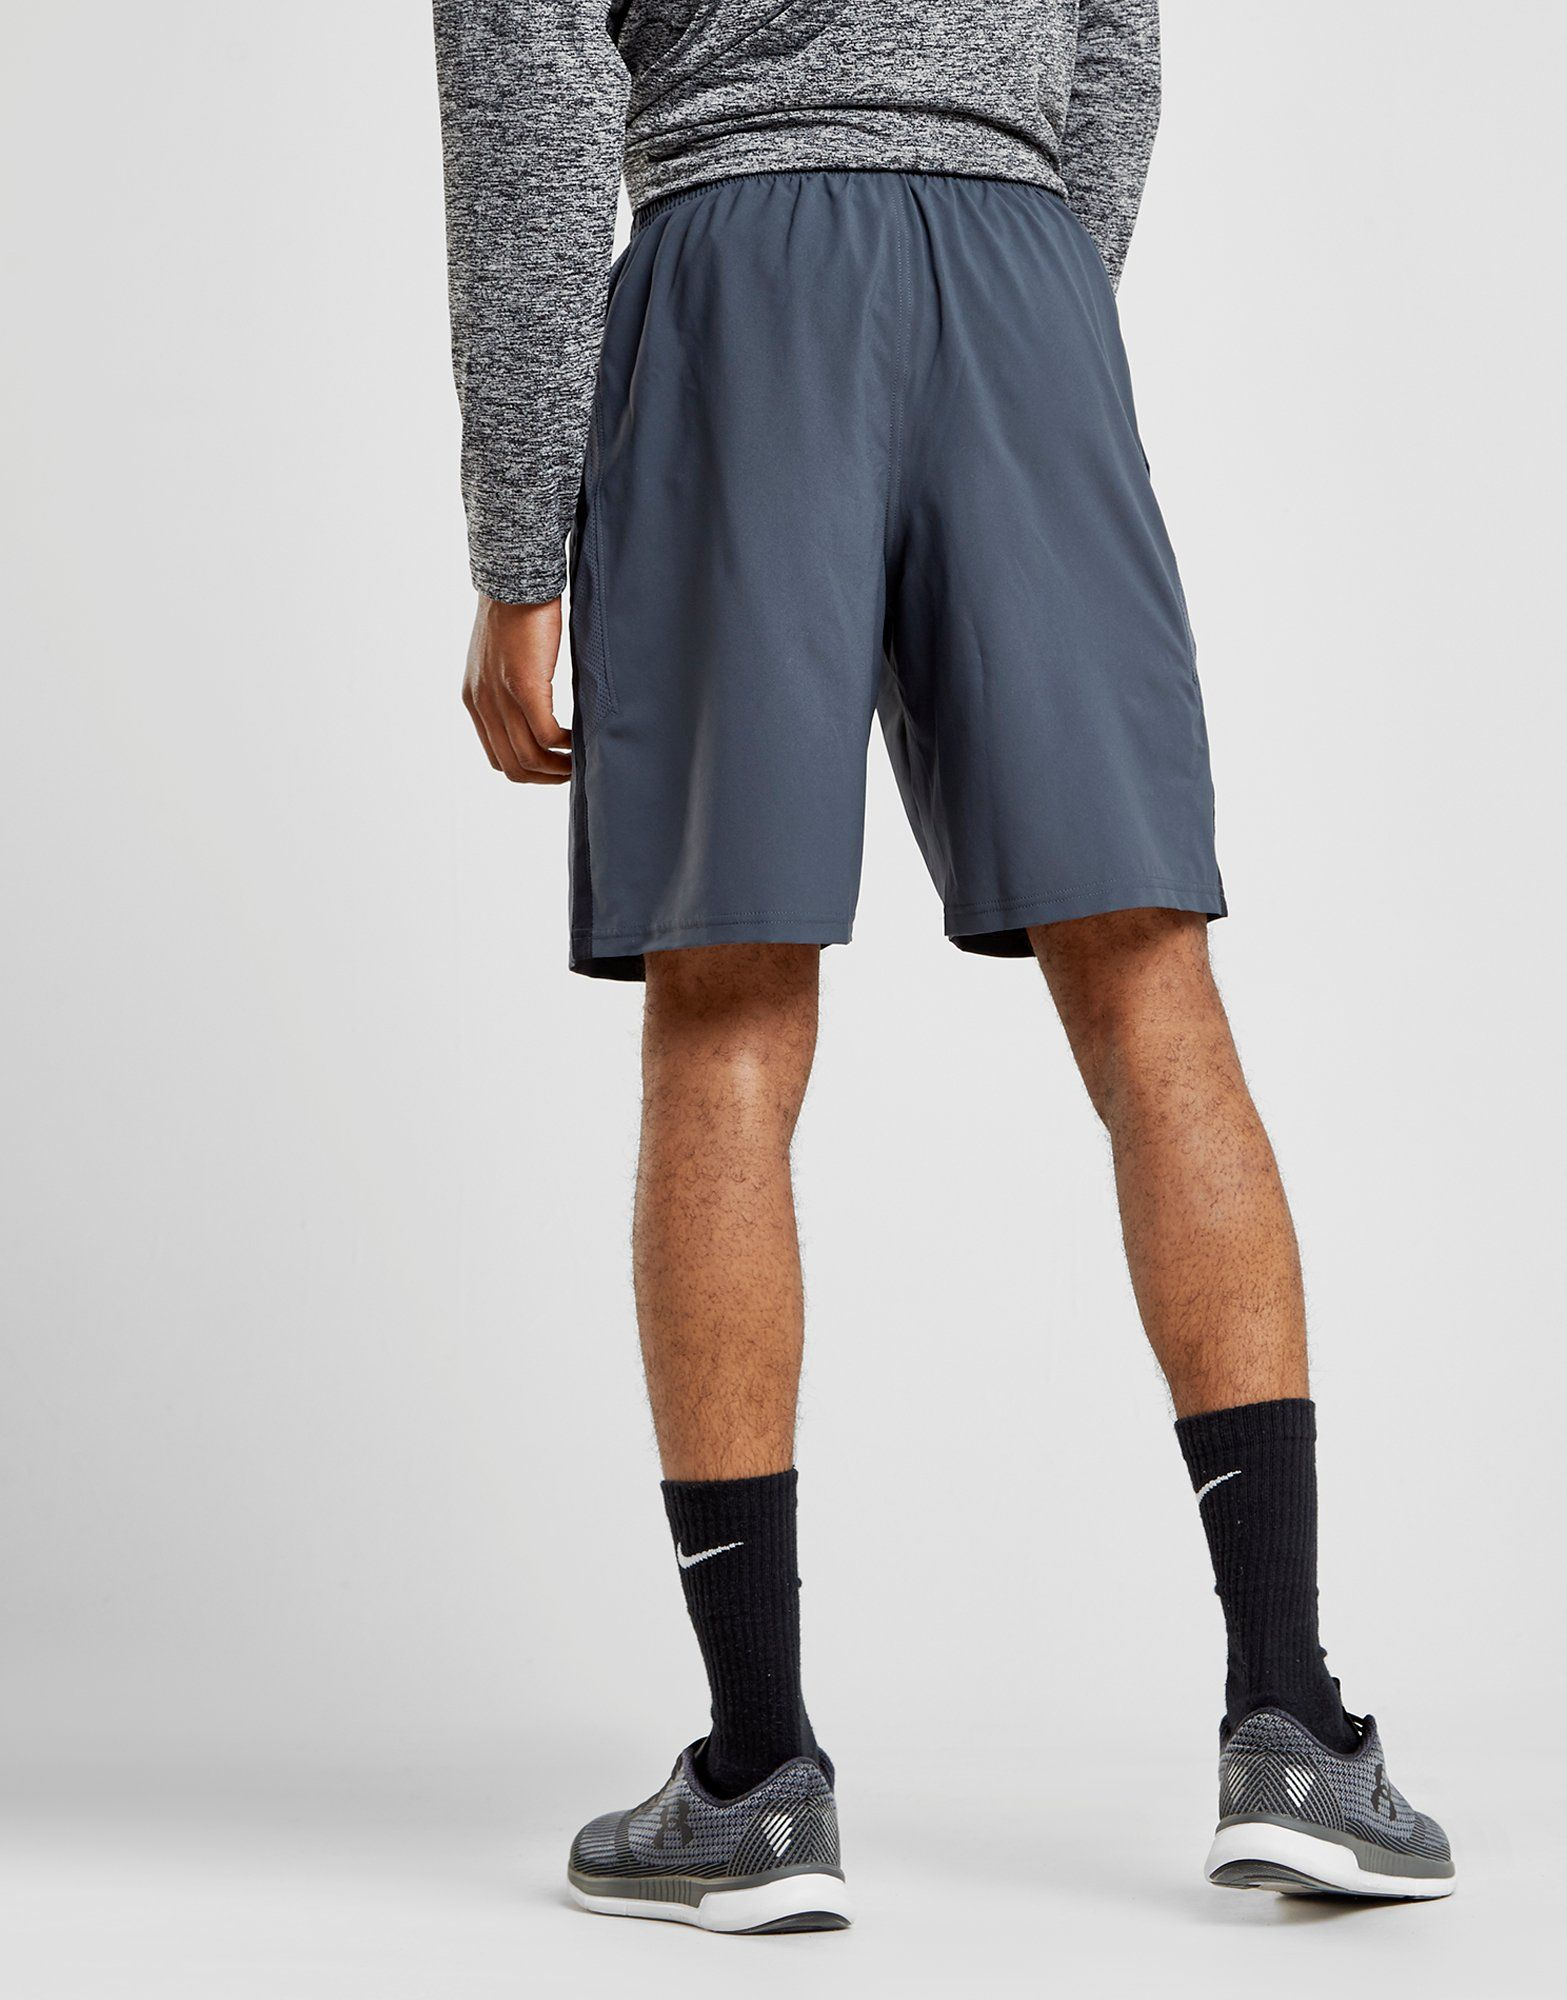 Under Armour Launch 9 Inch Shorts